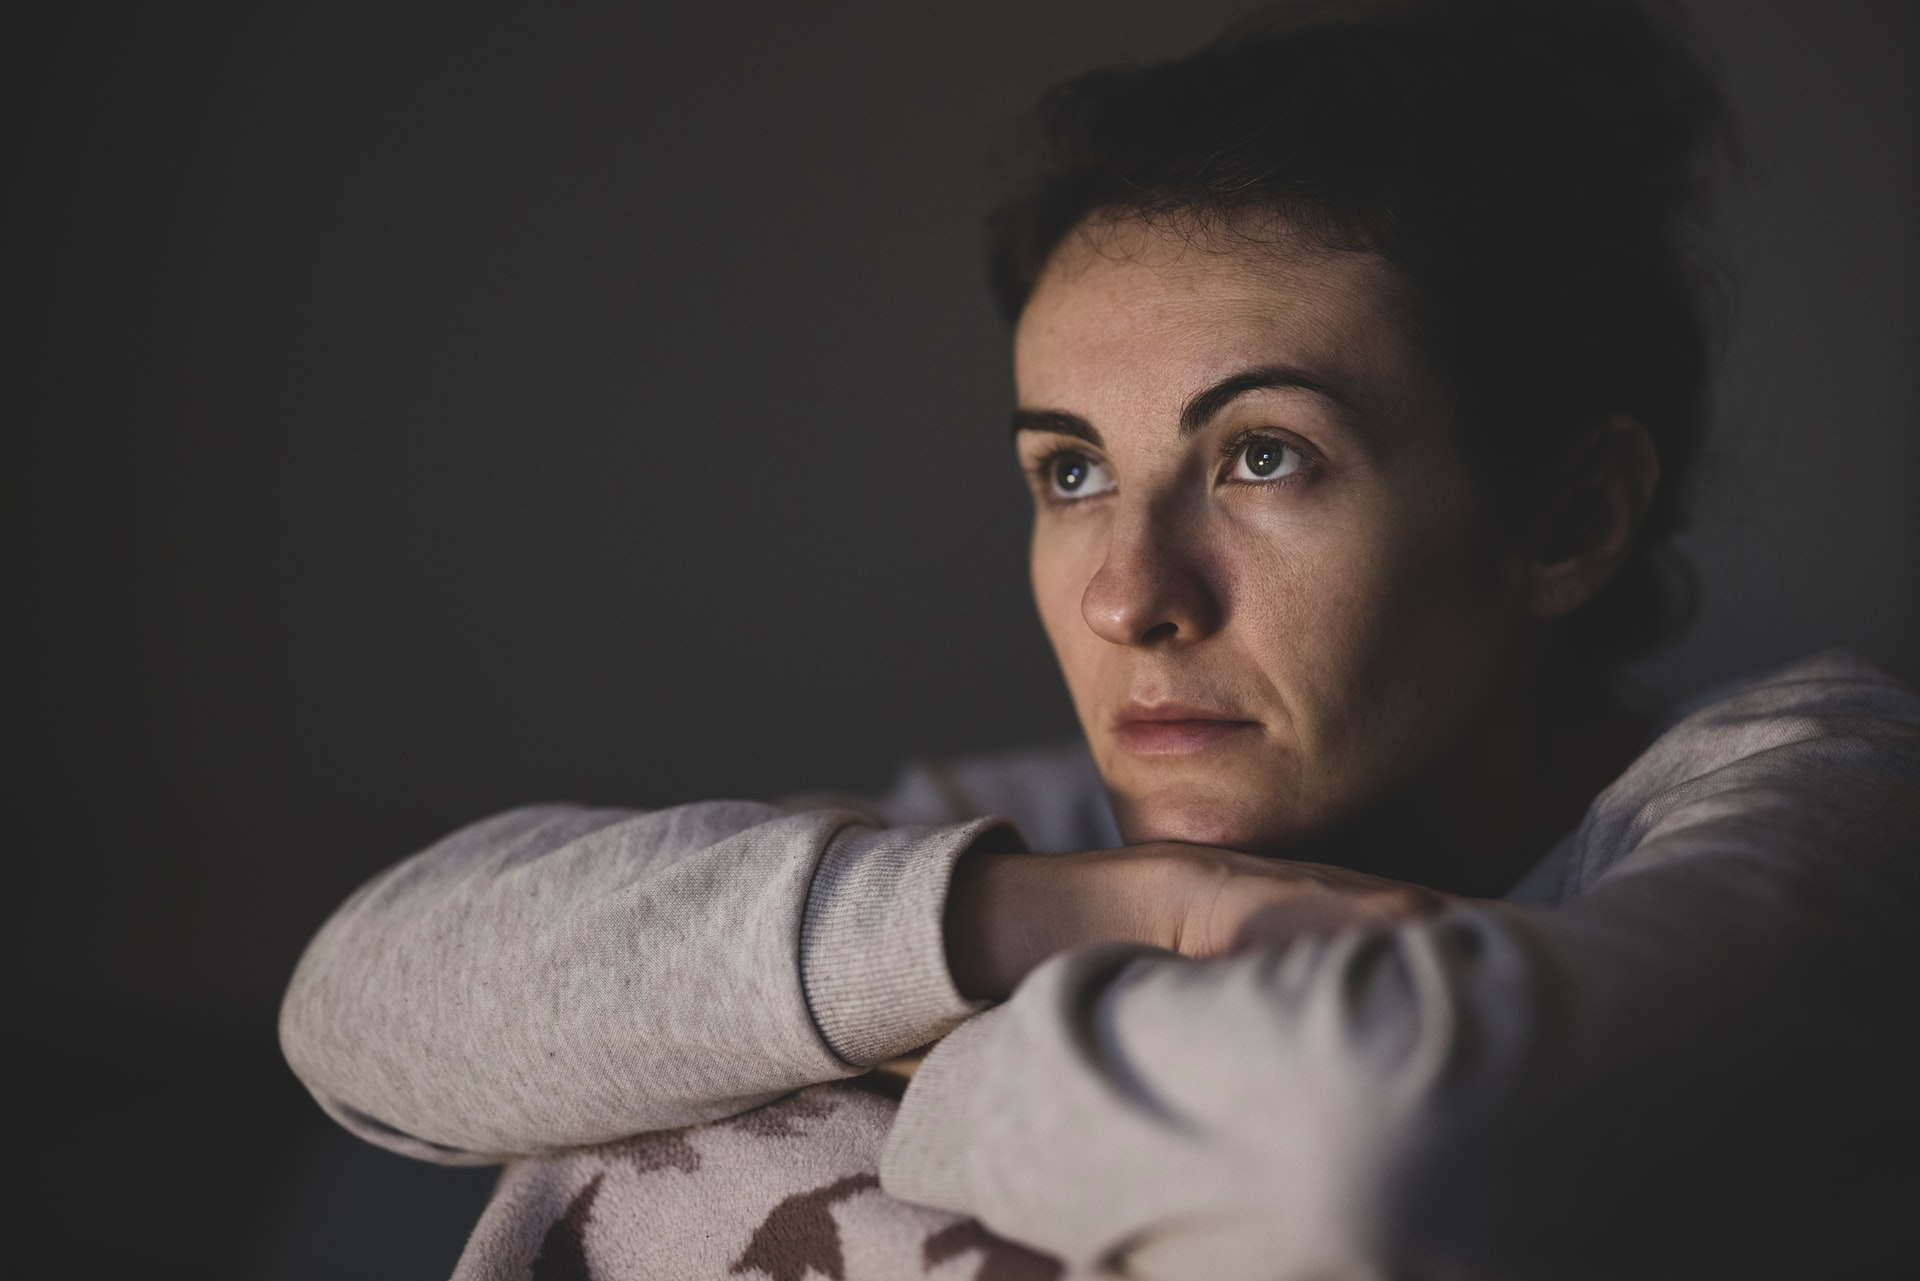 This image shows a woman looking miserable in dim lighting as she cannot get to sleep, she looks out to the distance.